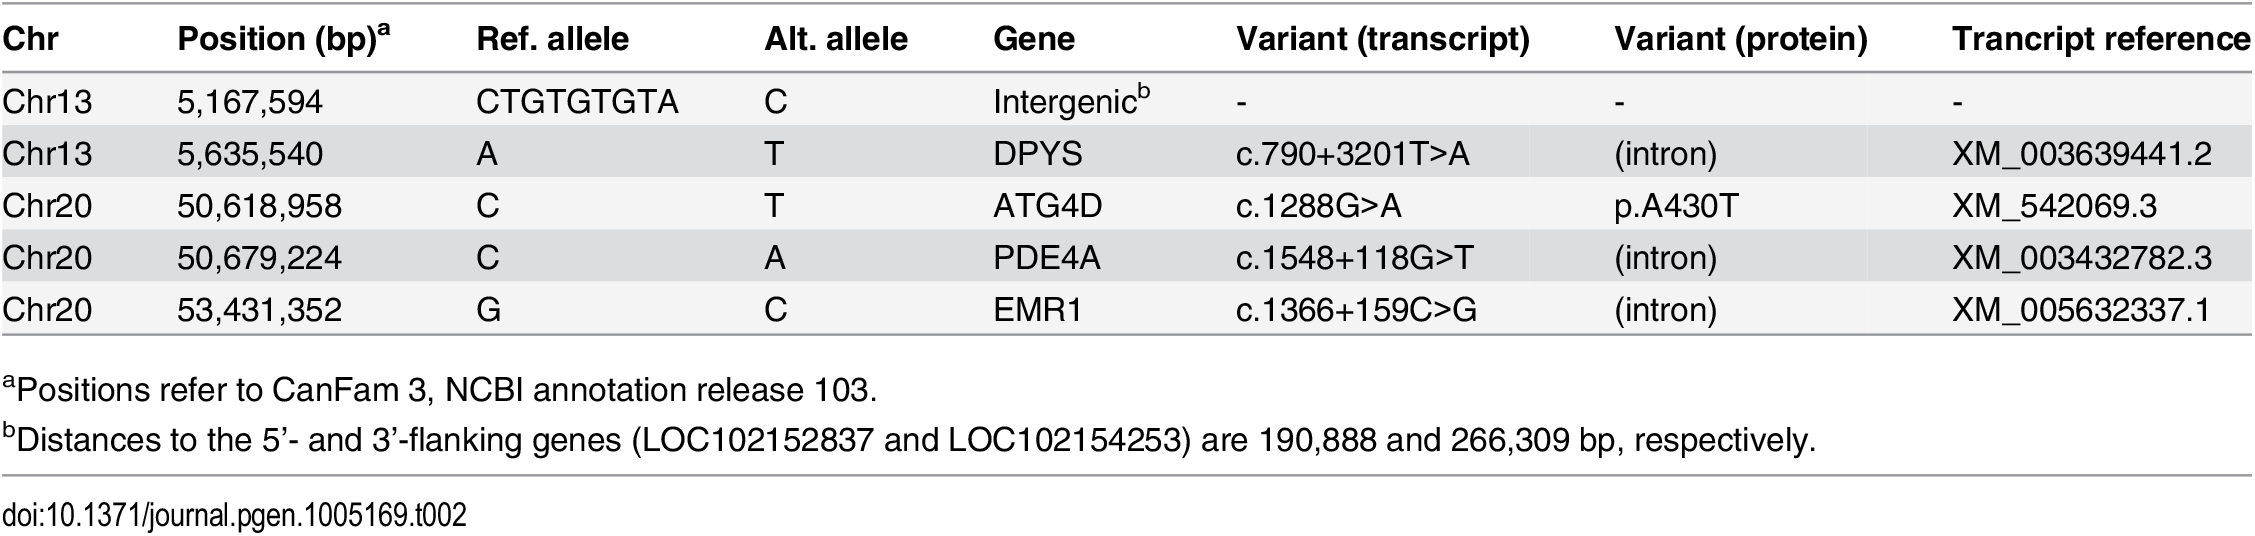 Private sequence variants in an affected dog in the critical intervals.